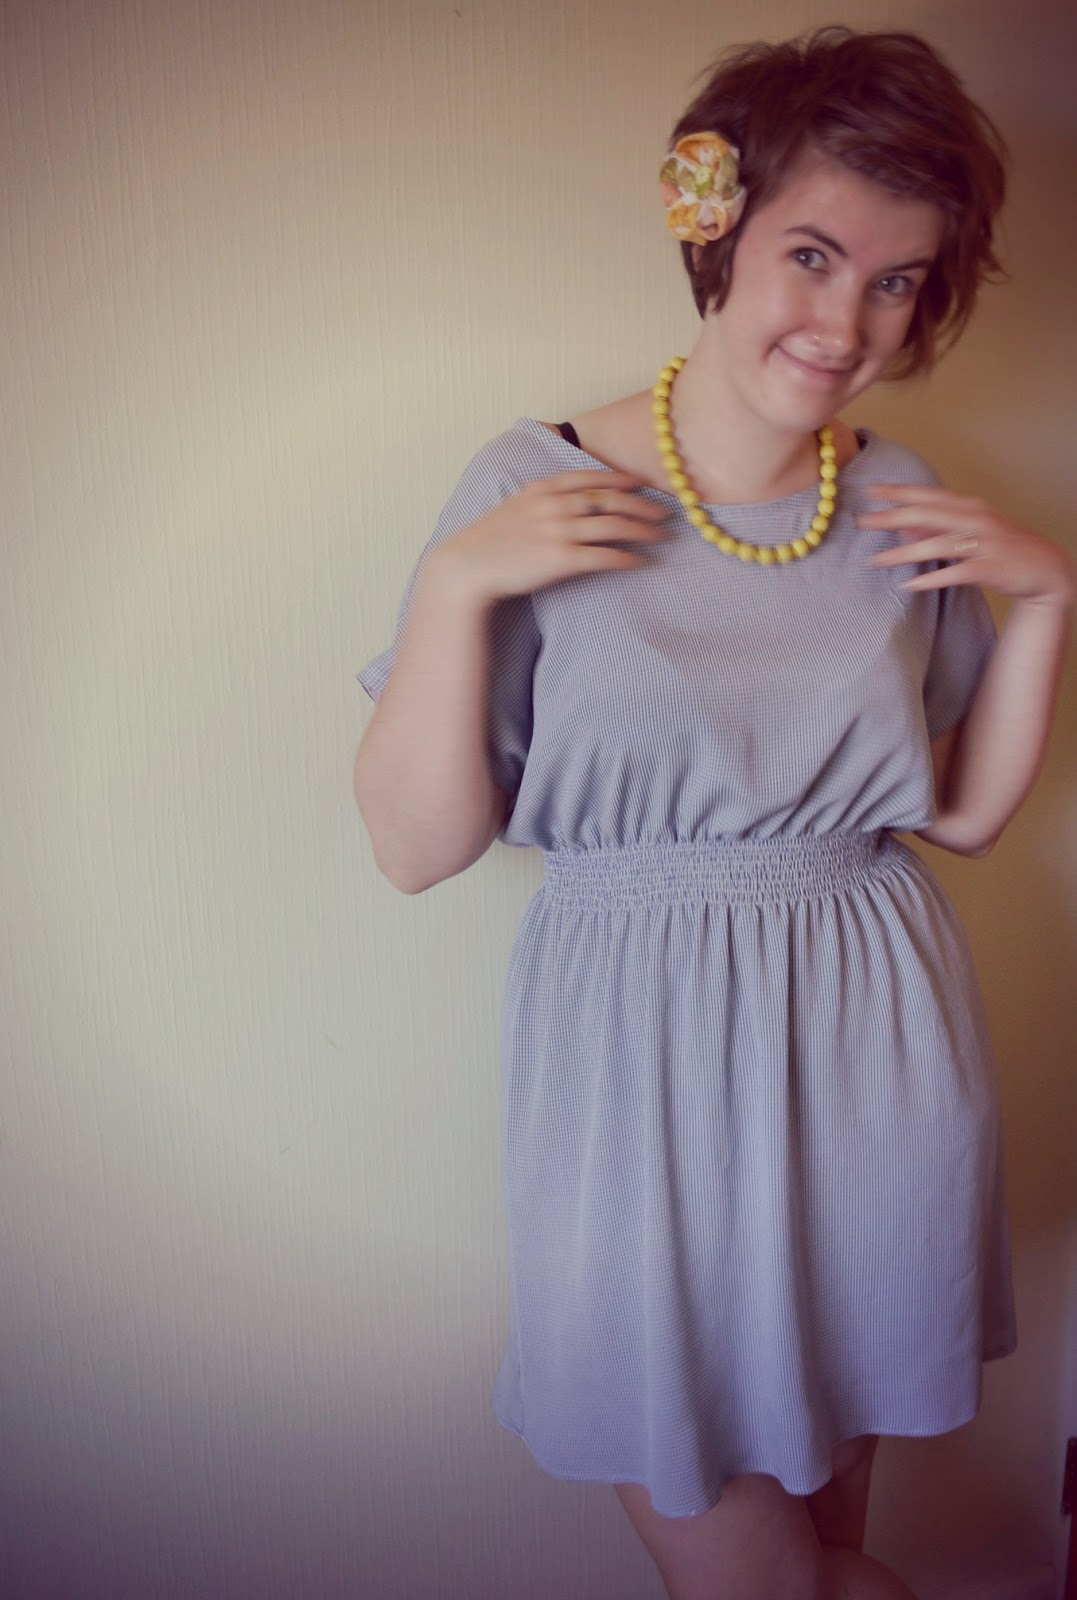 http://bamboo-bear.blogspot.co.nz/2014/03/today-i-made-dress.html